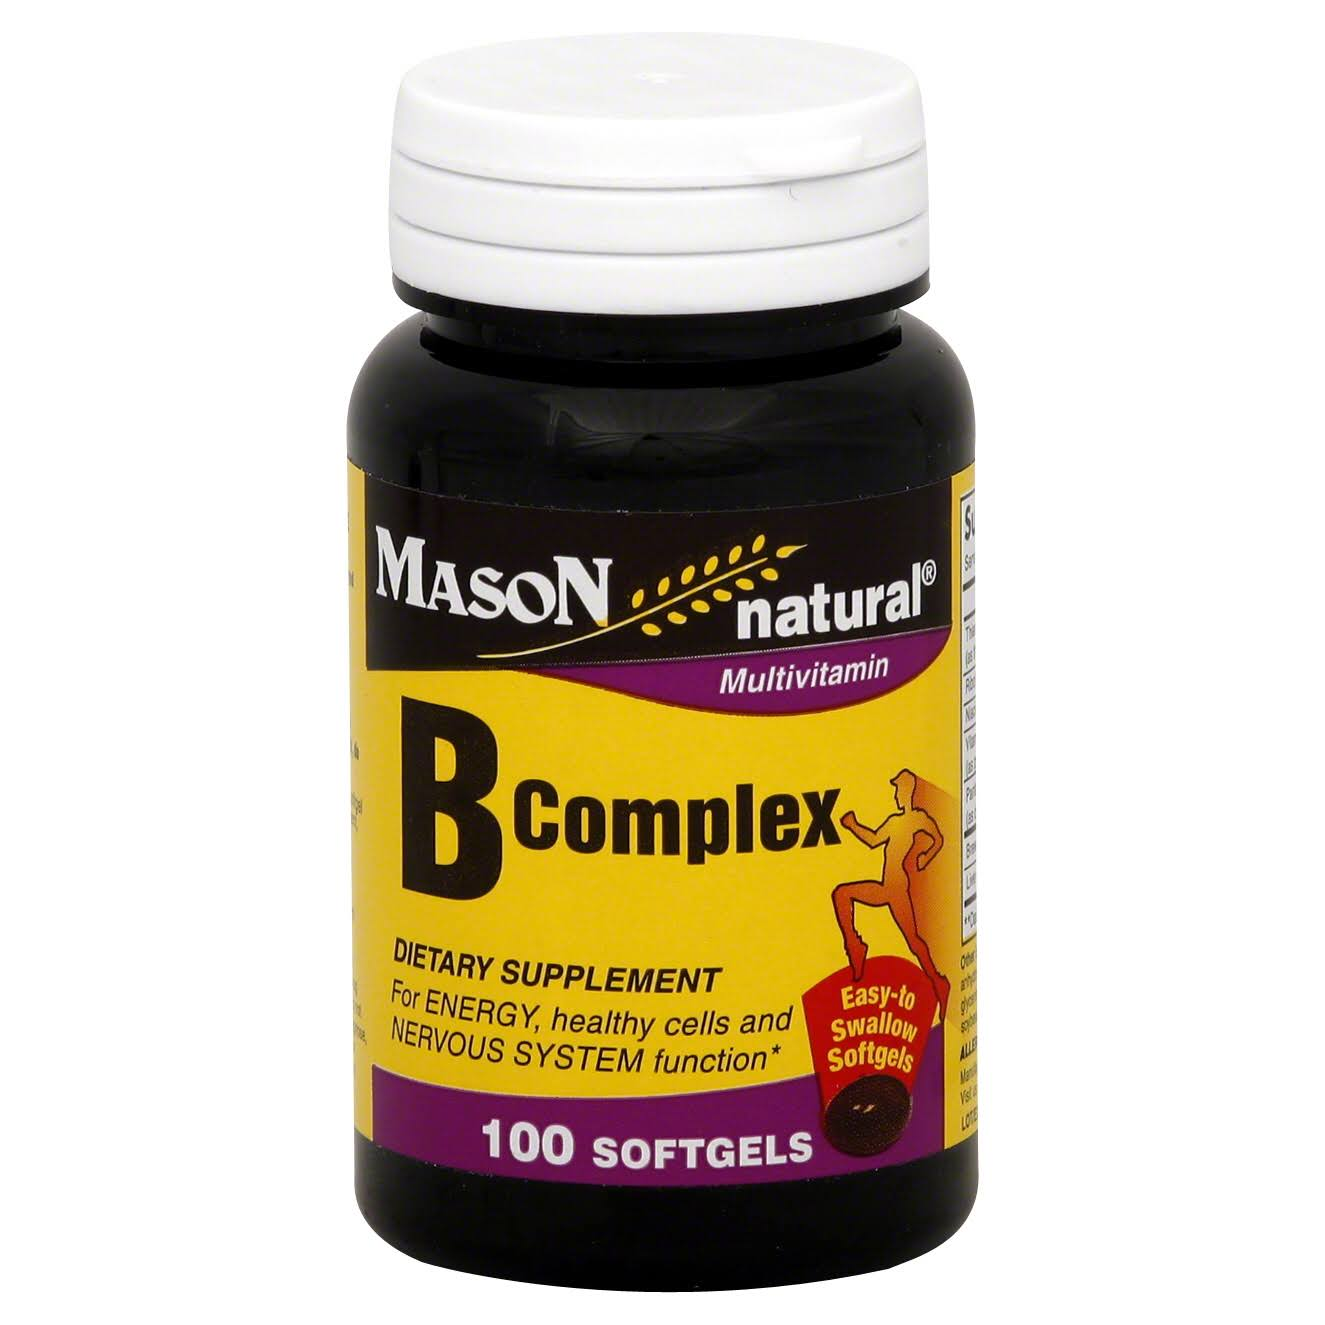 Mason Natural B Liquid Complex Dietary Supplement - 100 Softgels